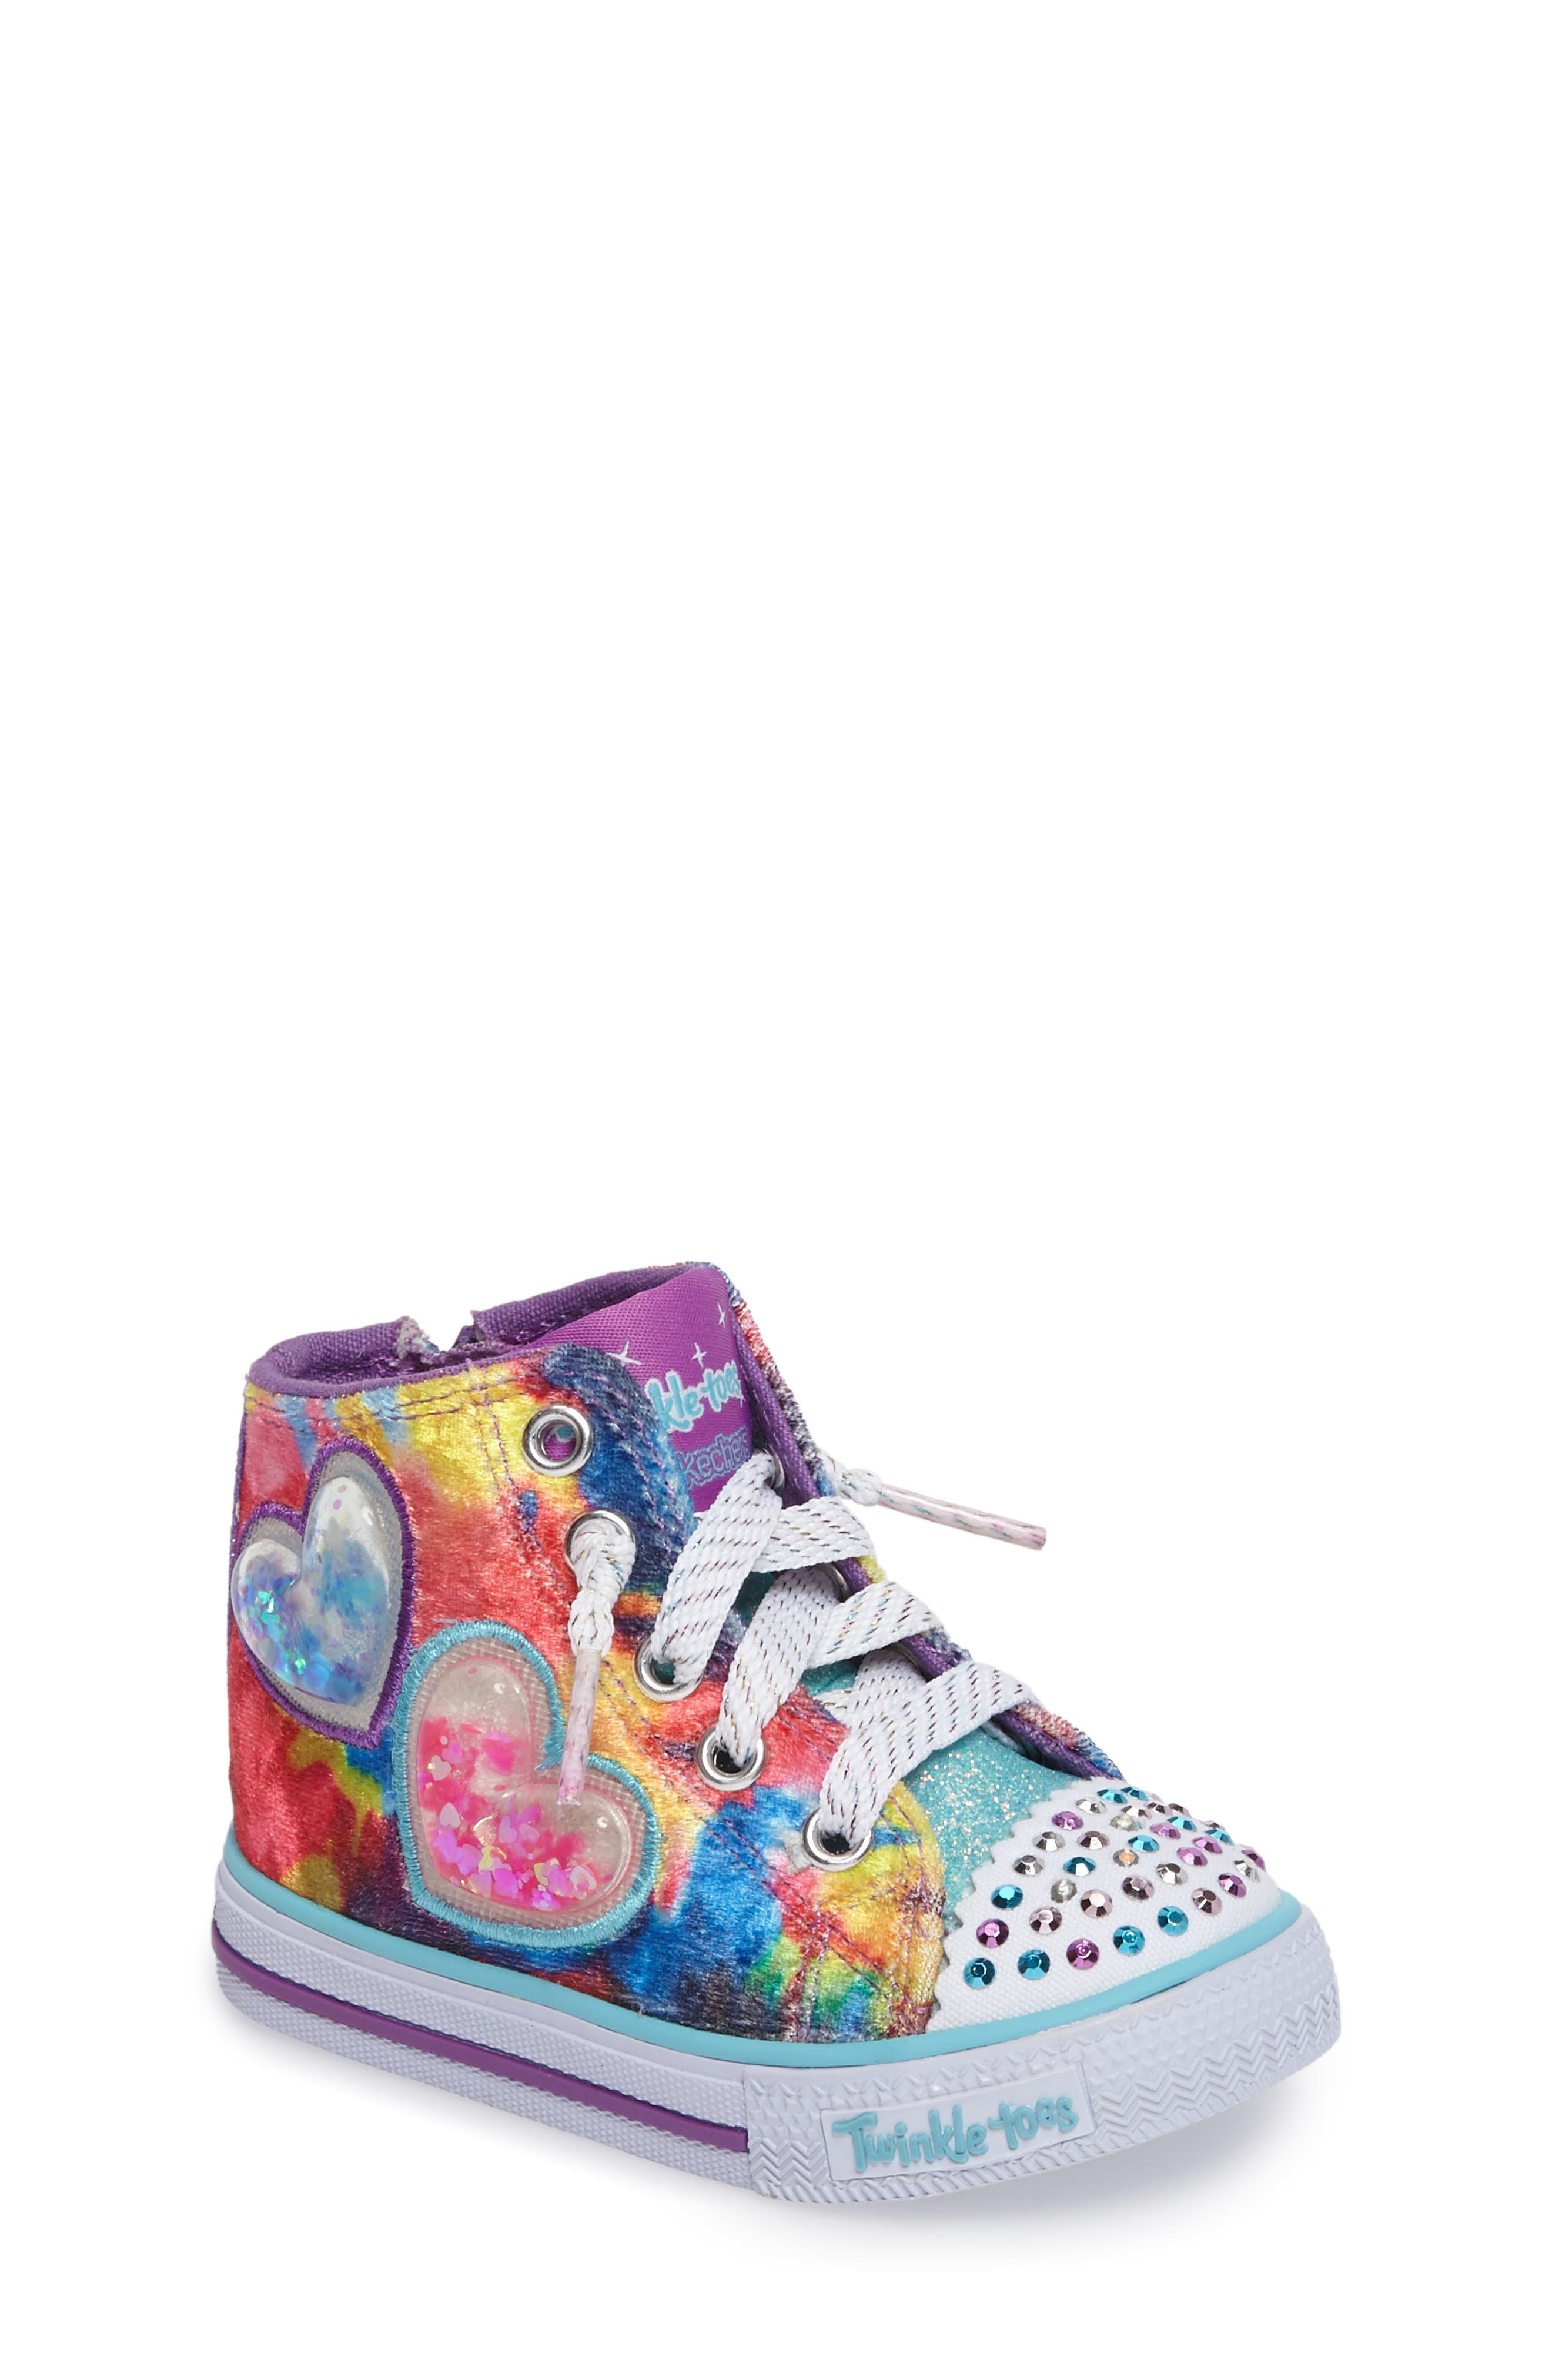 Twinkle Toes Shuffles Light-Up High Top Sneaker,                             Main thumbnail 1, color,                             650